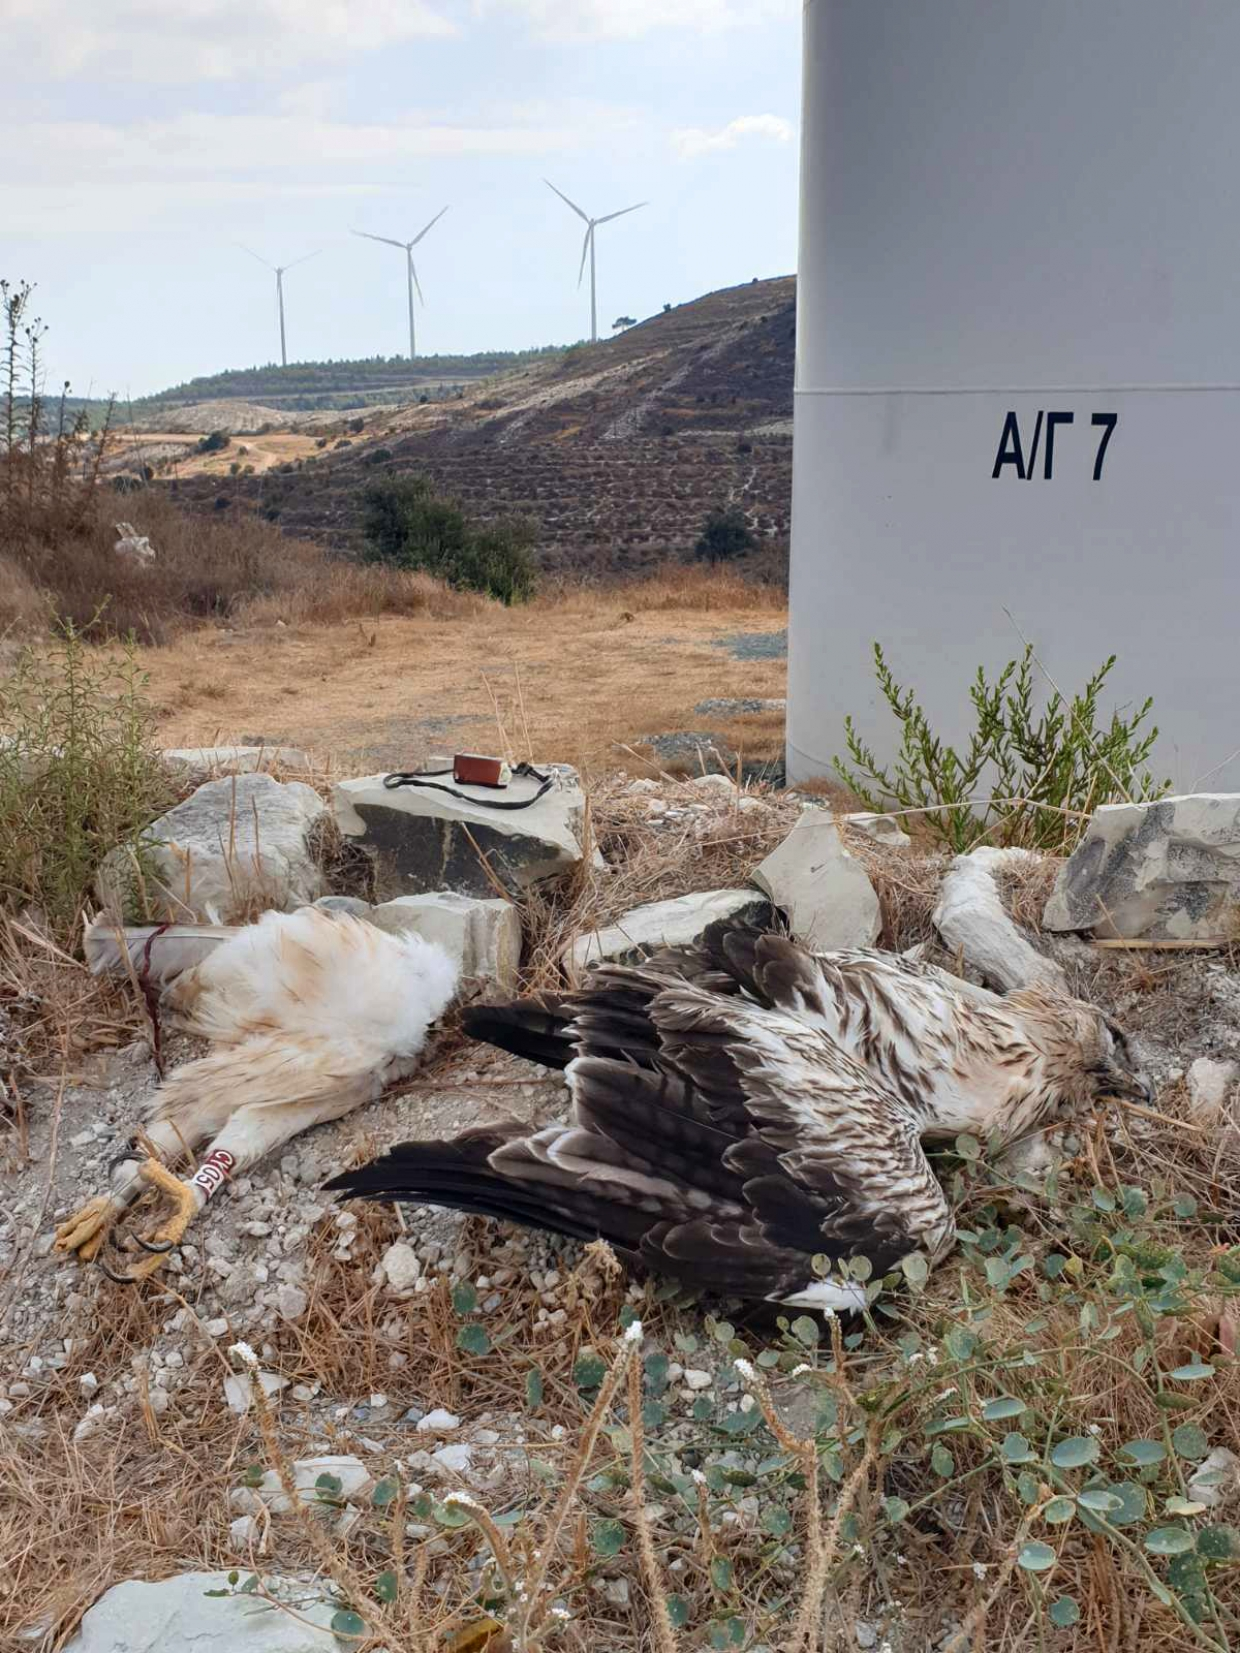 Bonelli's Eagle found dead near wind farm in Cyprus